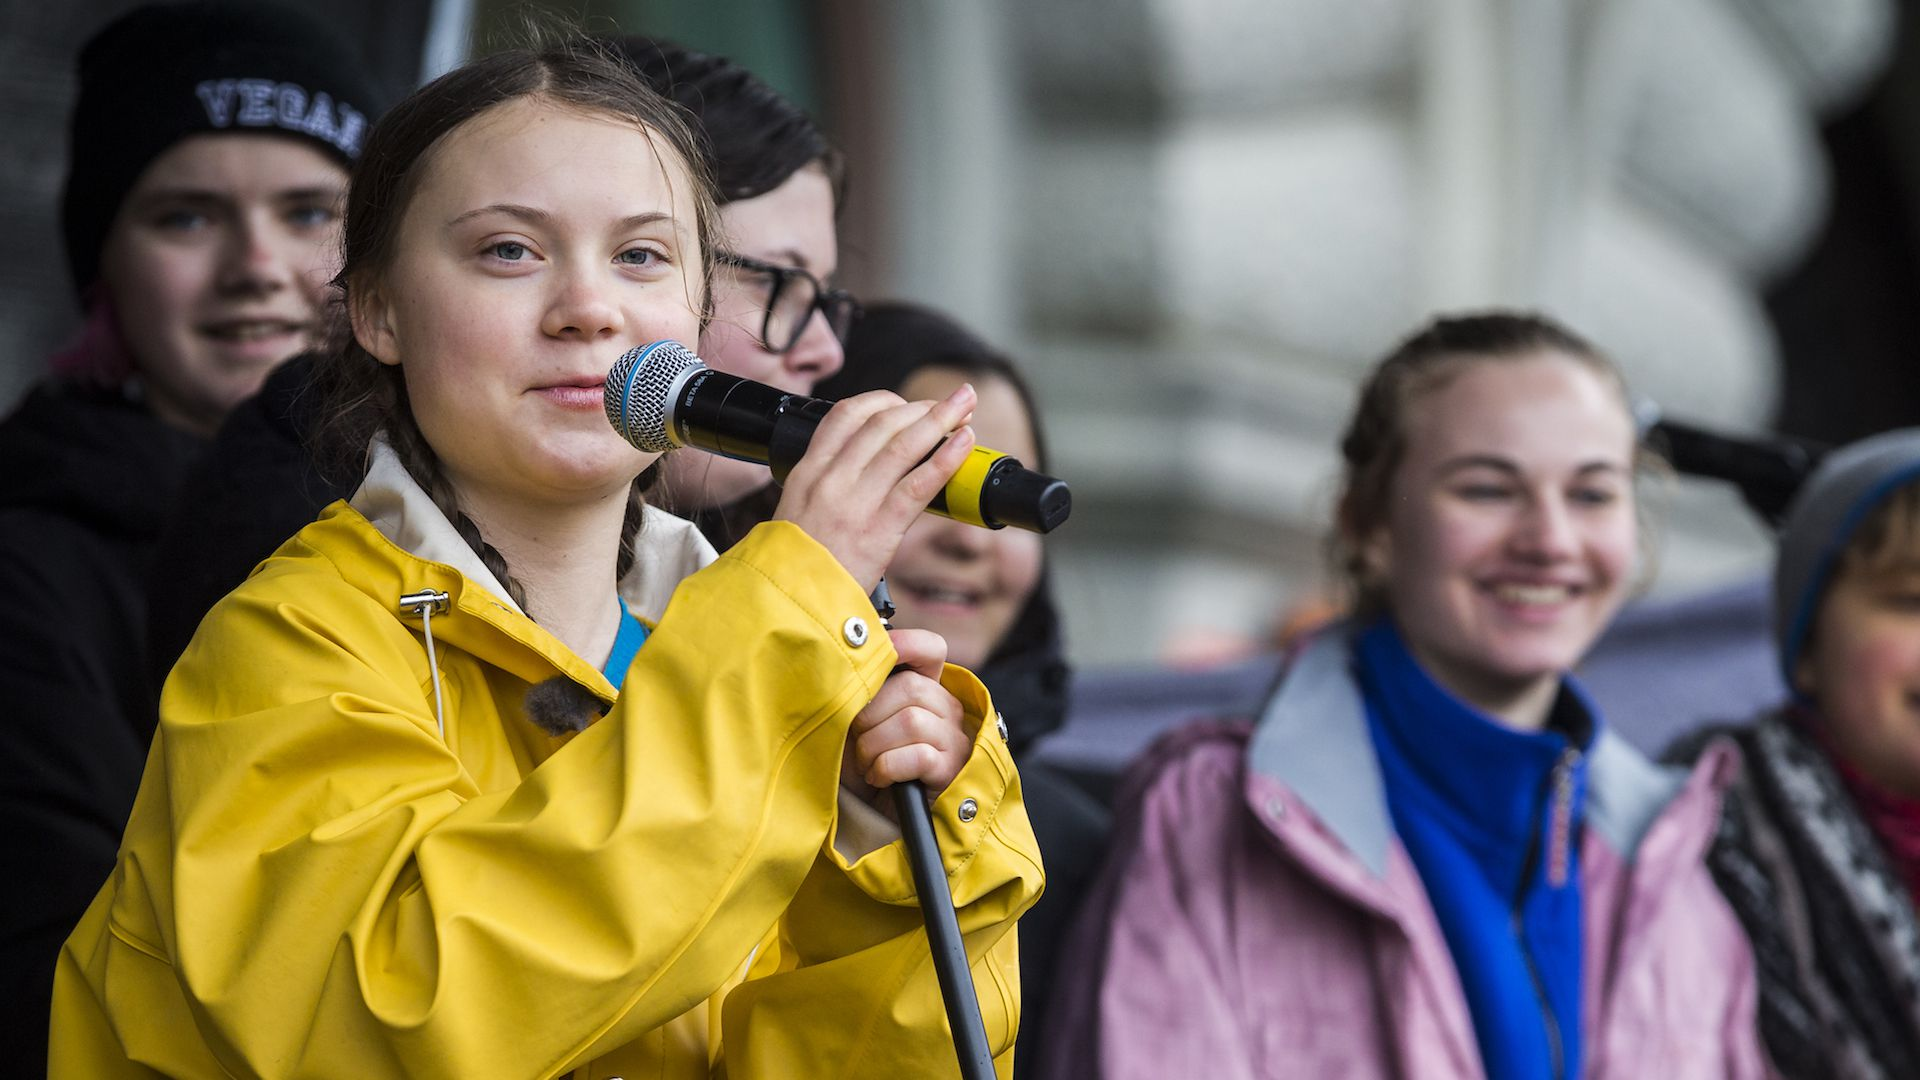 Climate activist Greta Thunberg speaks at a climate rally outside Swedish Parliament on March 15, 2019.